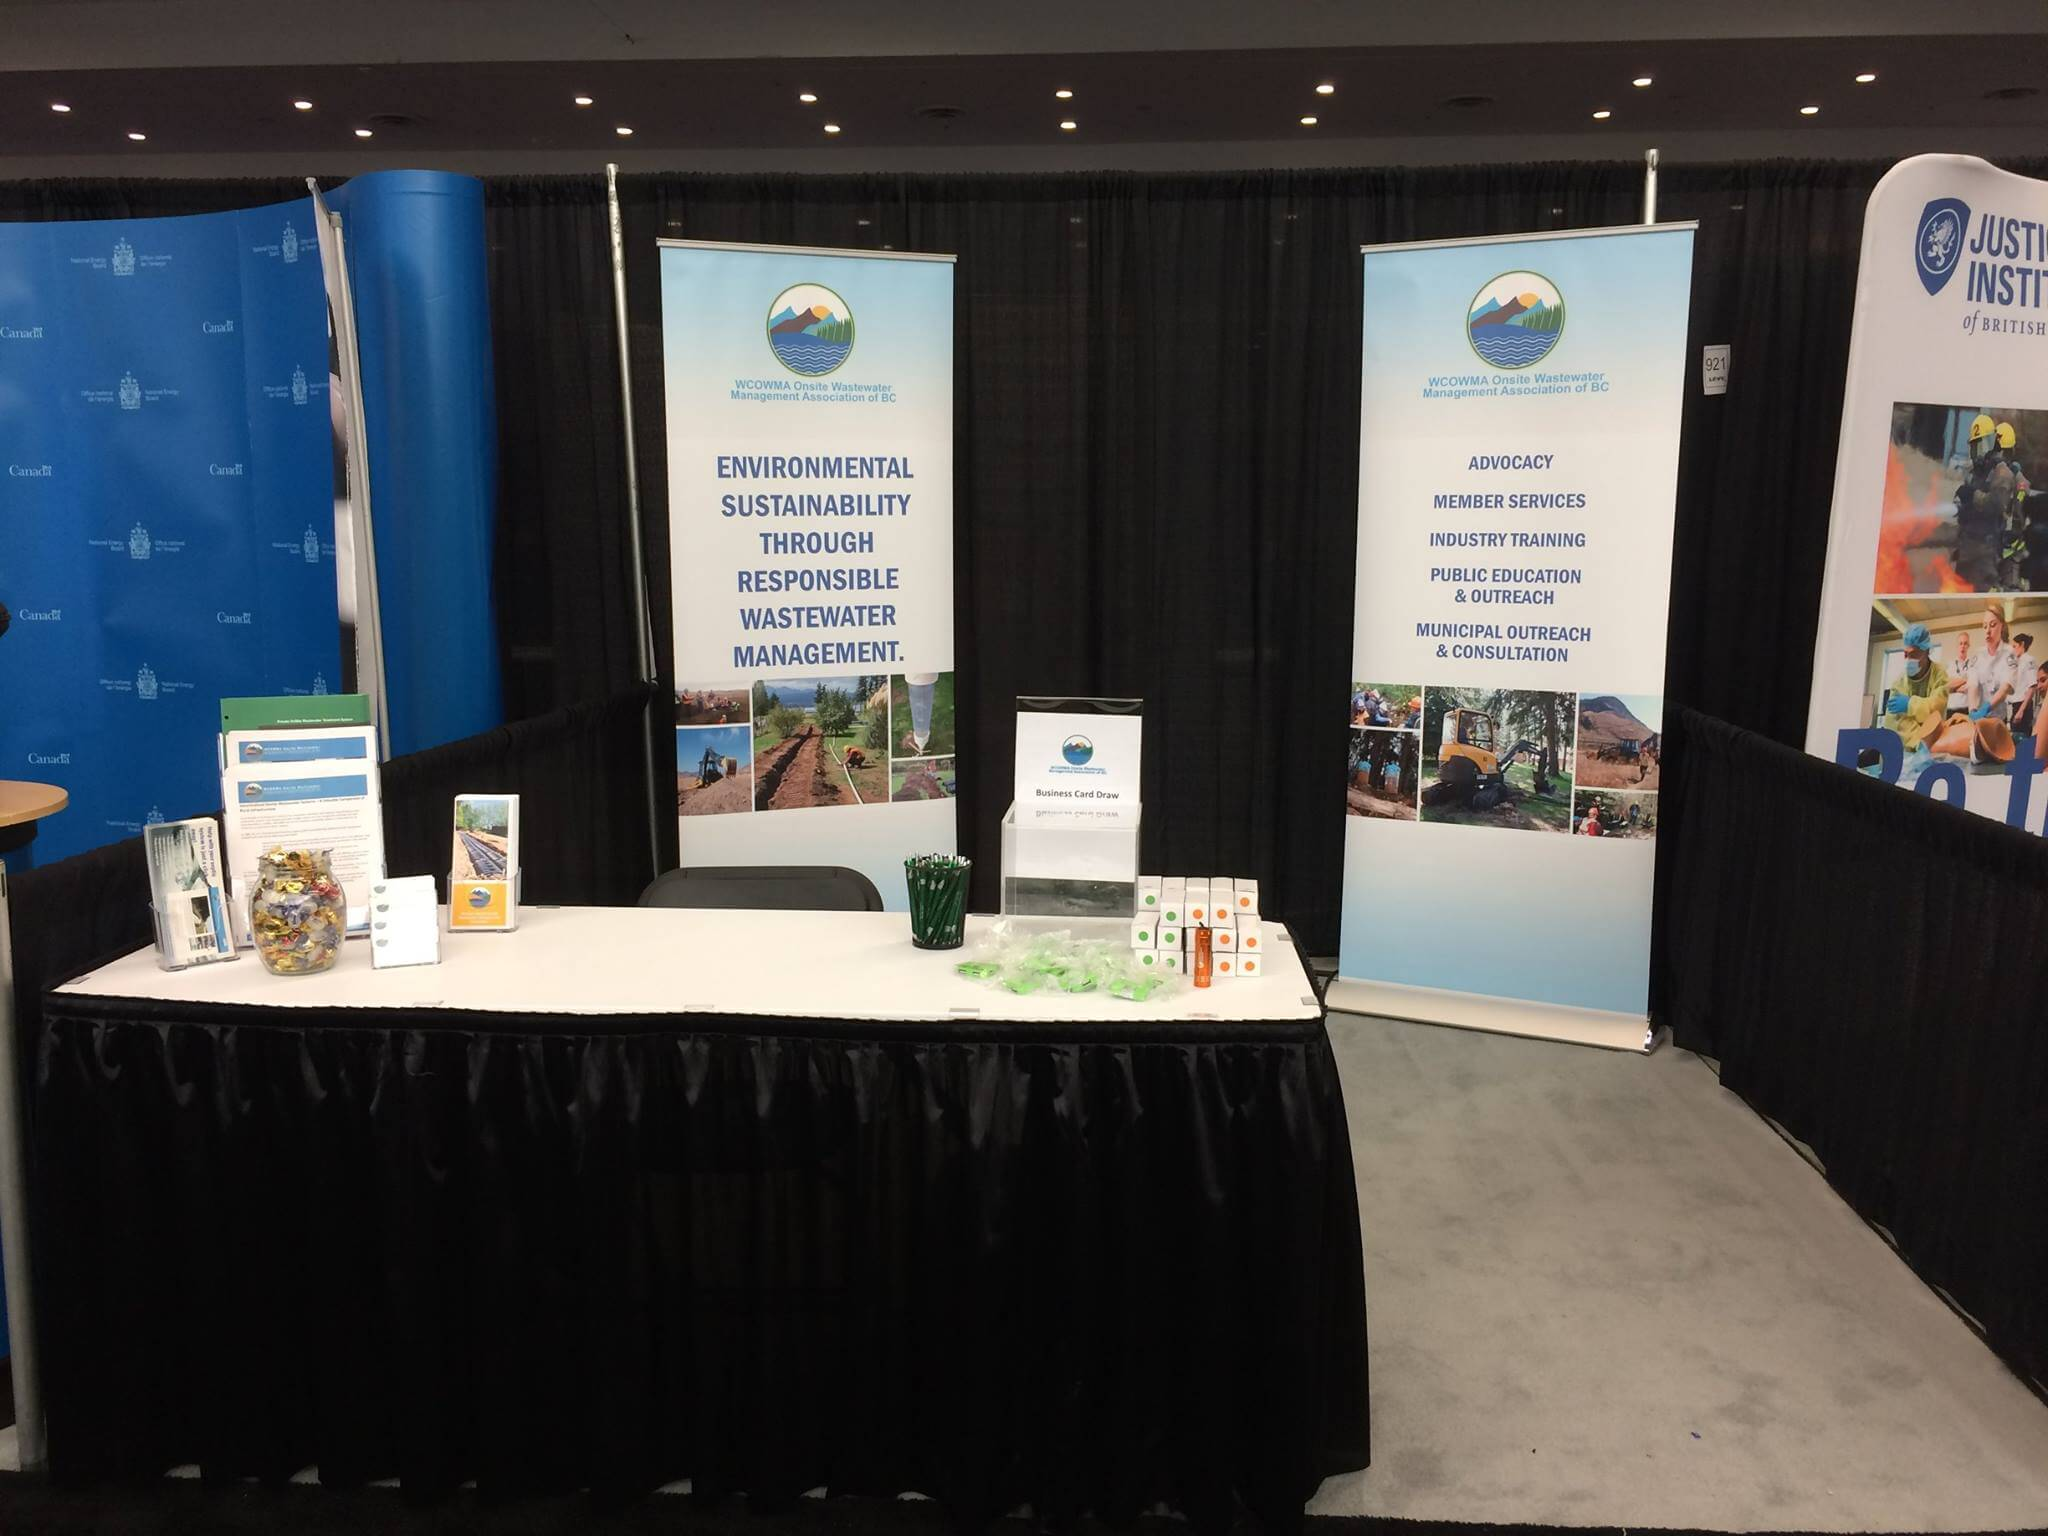 Trade Show Booth Vancouver : Ubcm conference wcowma onsite wastewater management